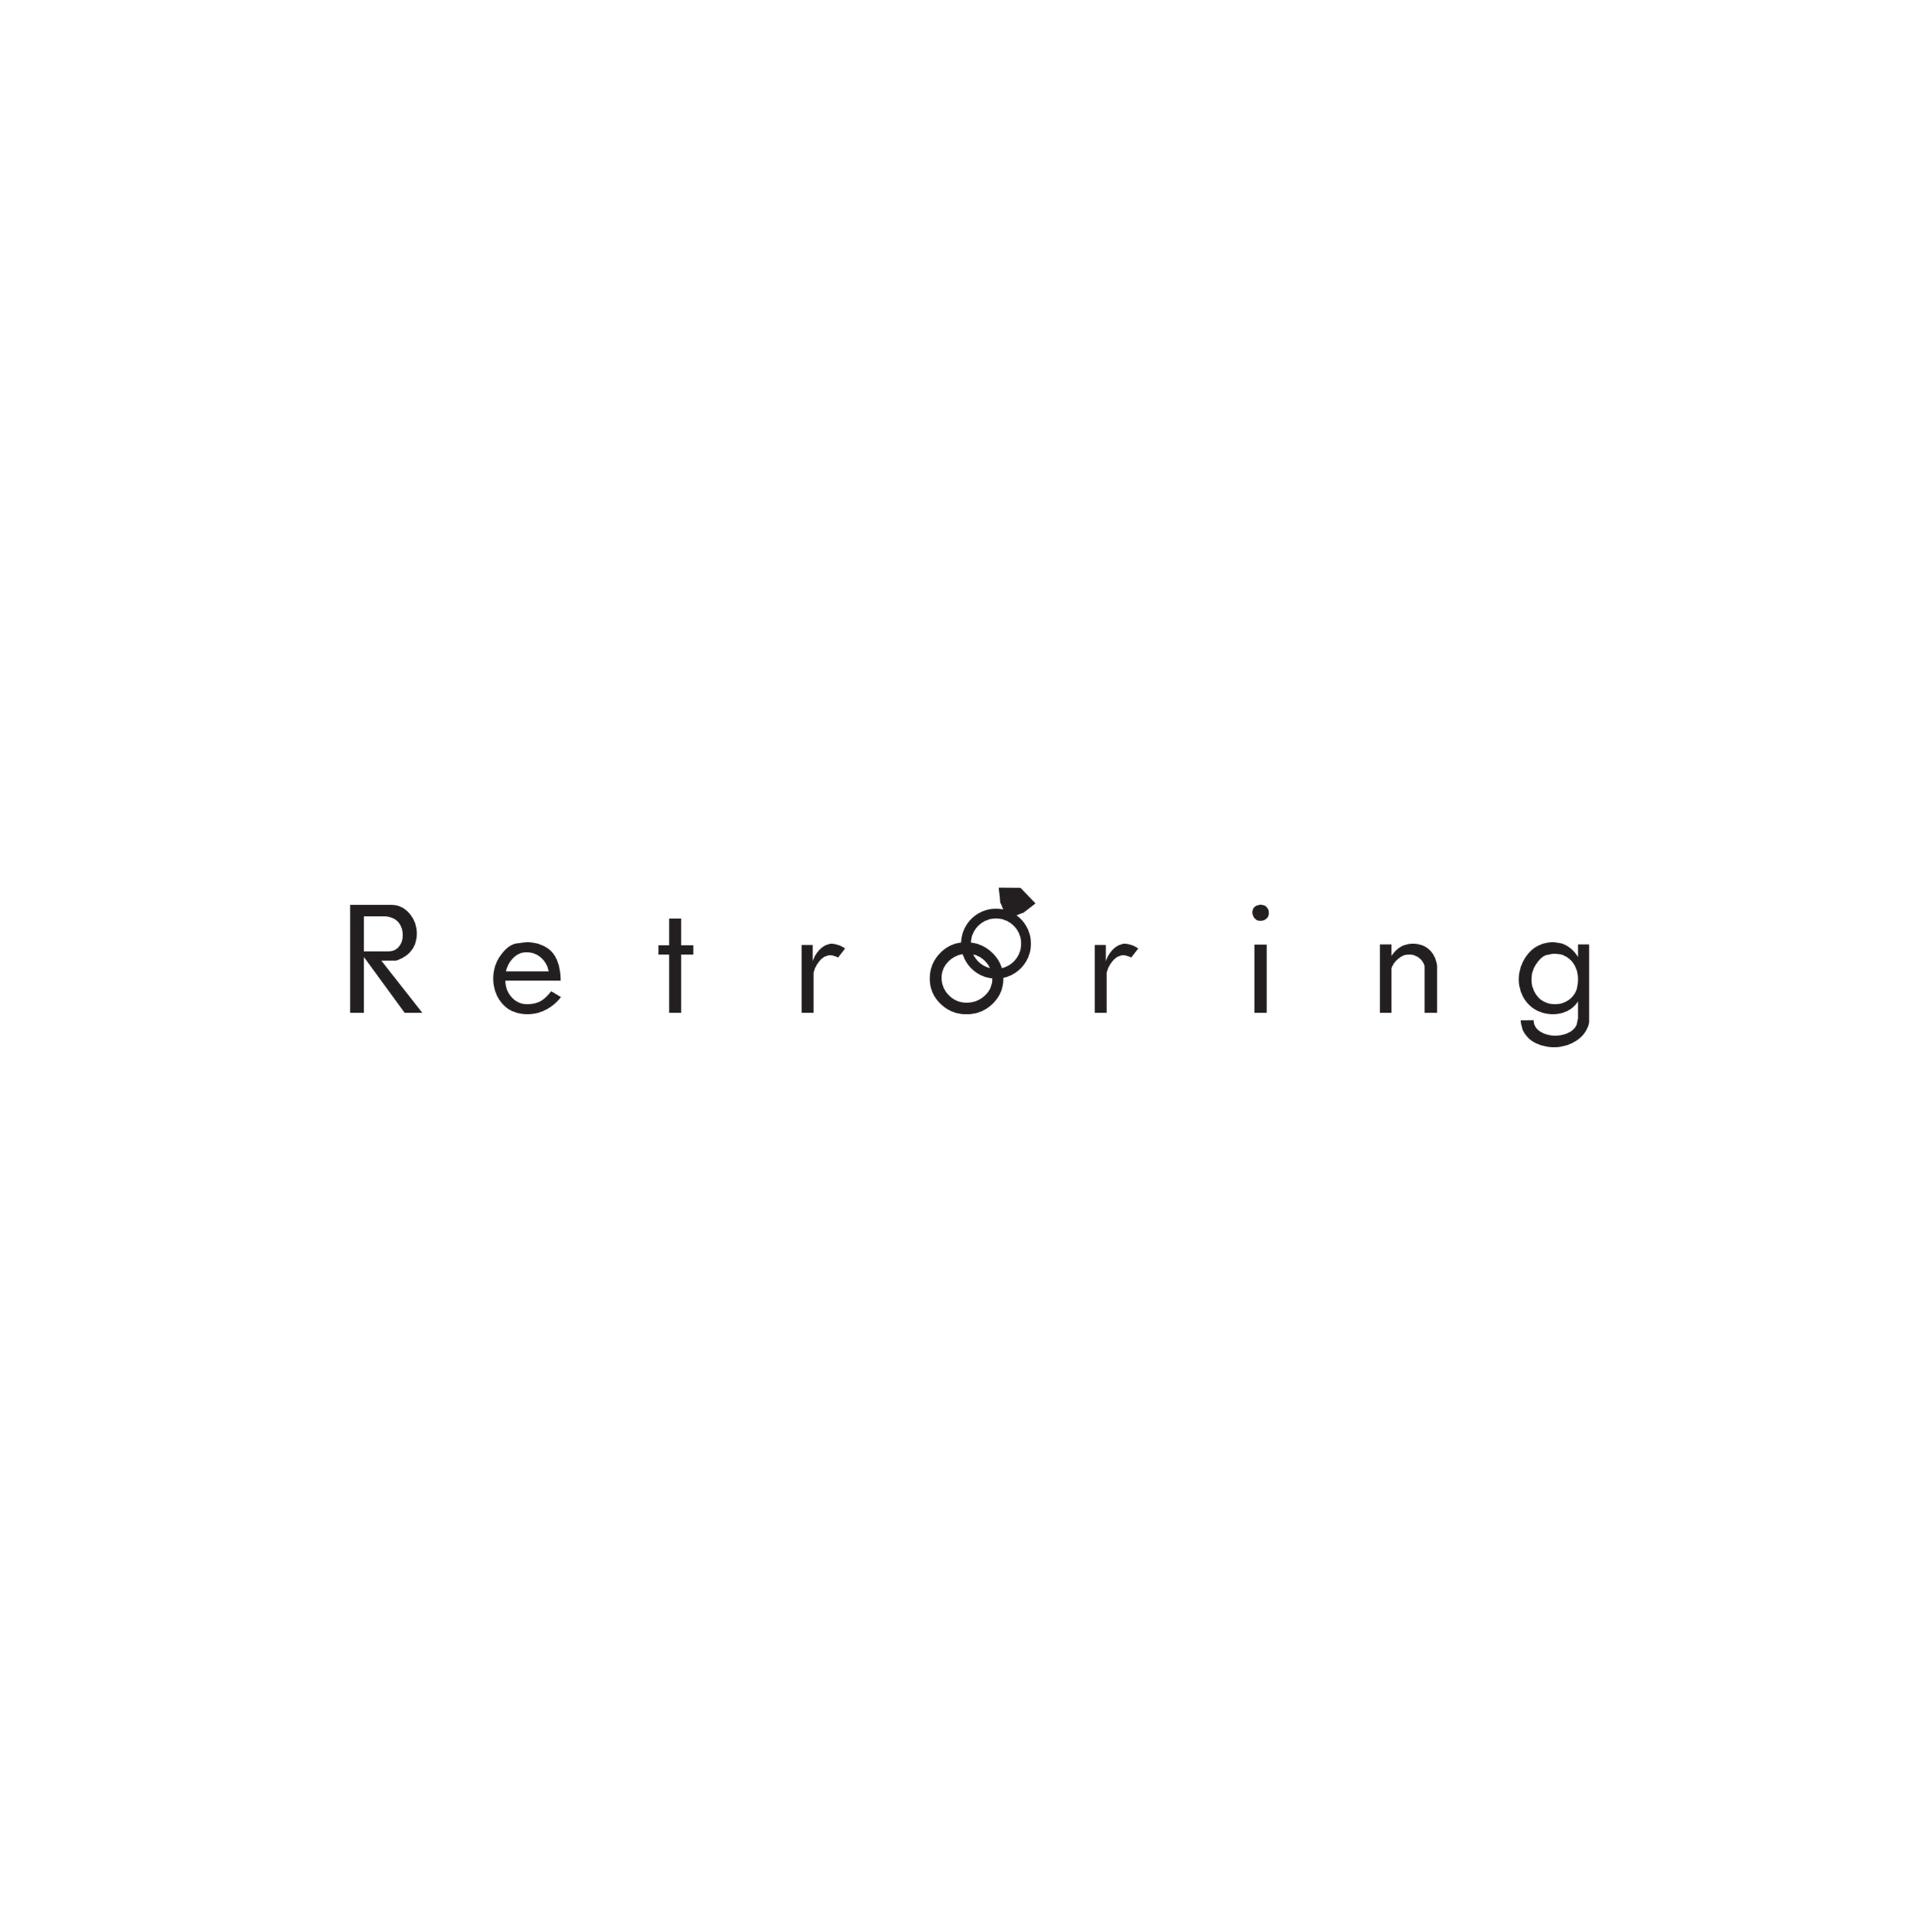 Retroring logo Design